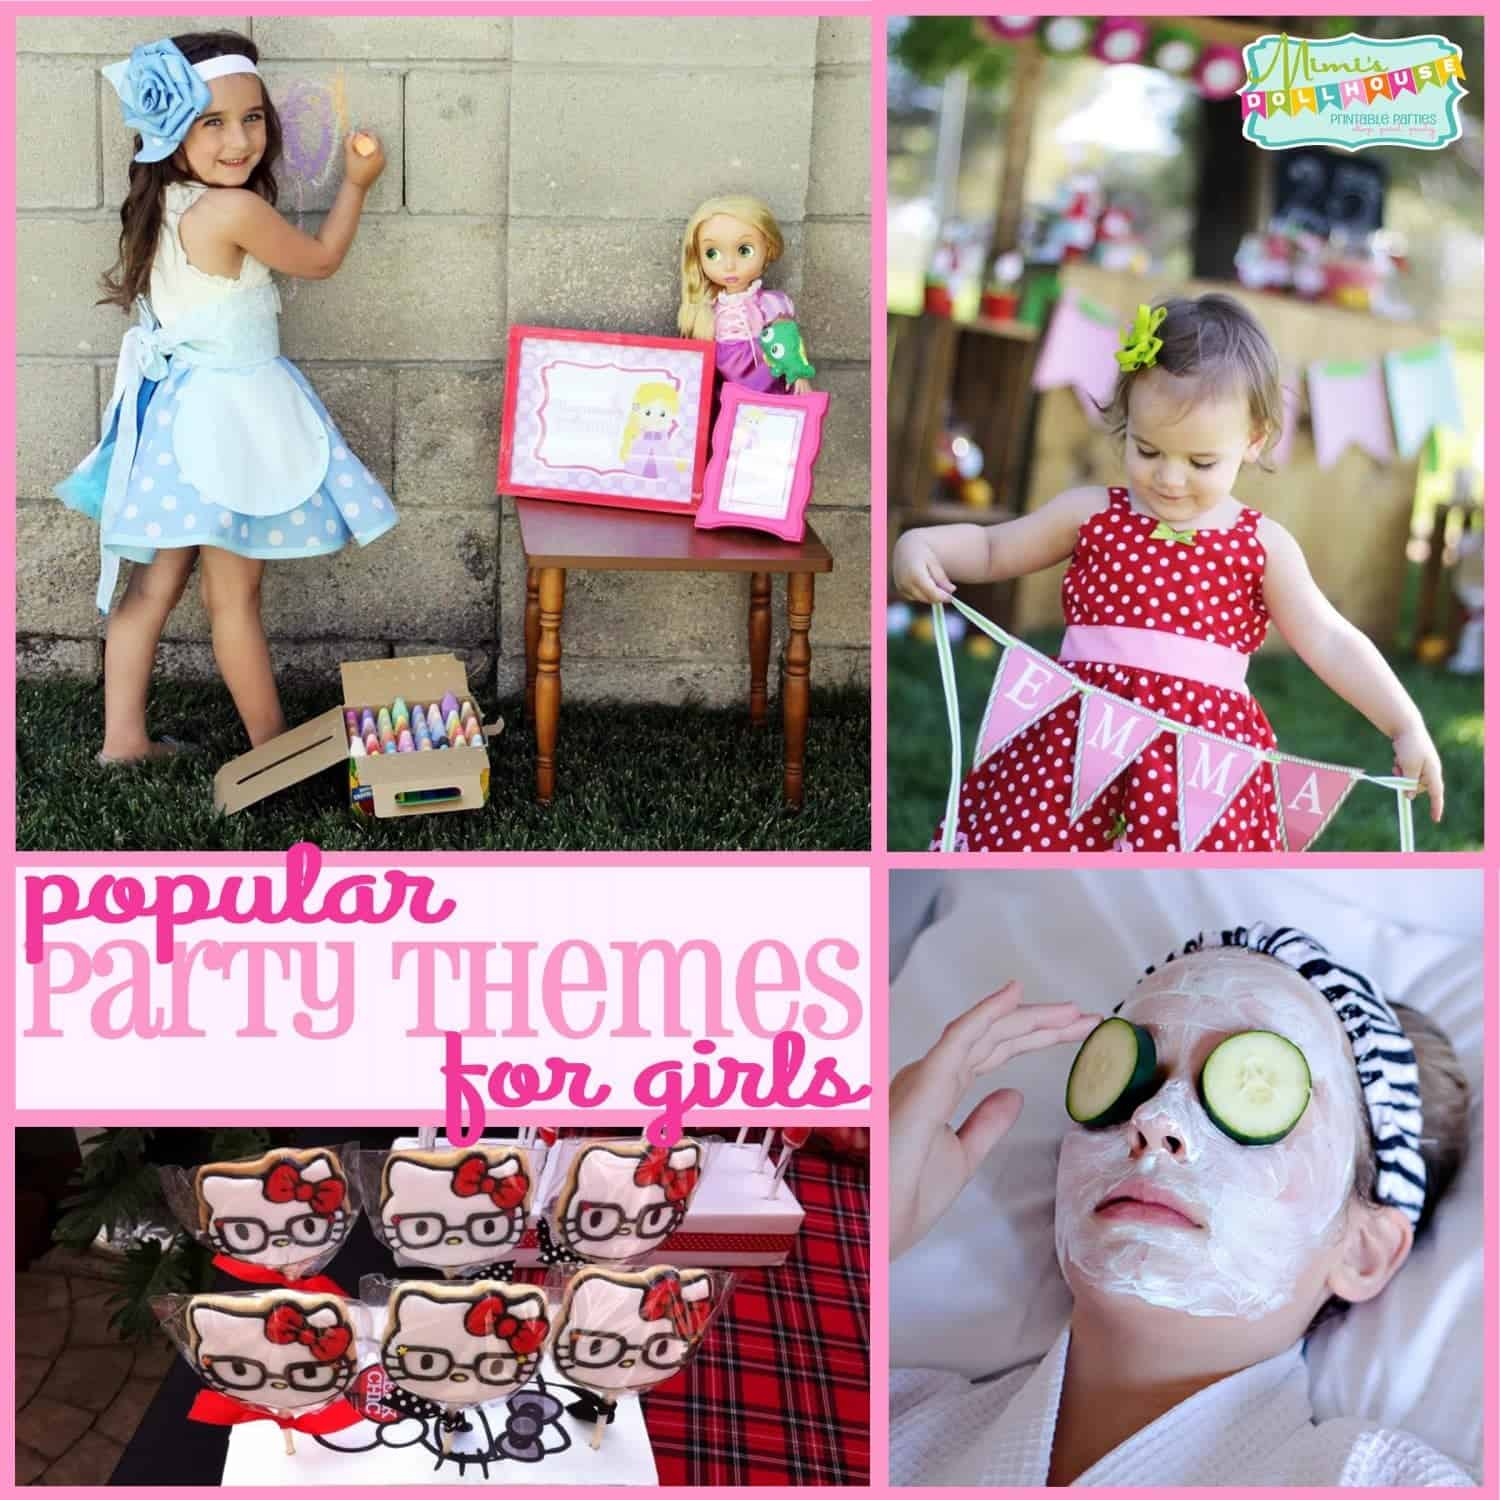 Trends: Popular Party Themes for Girls